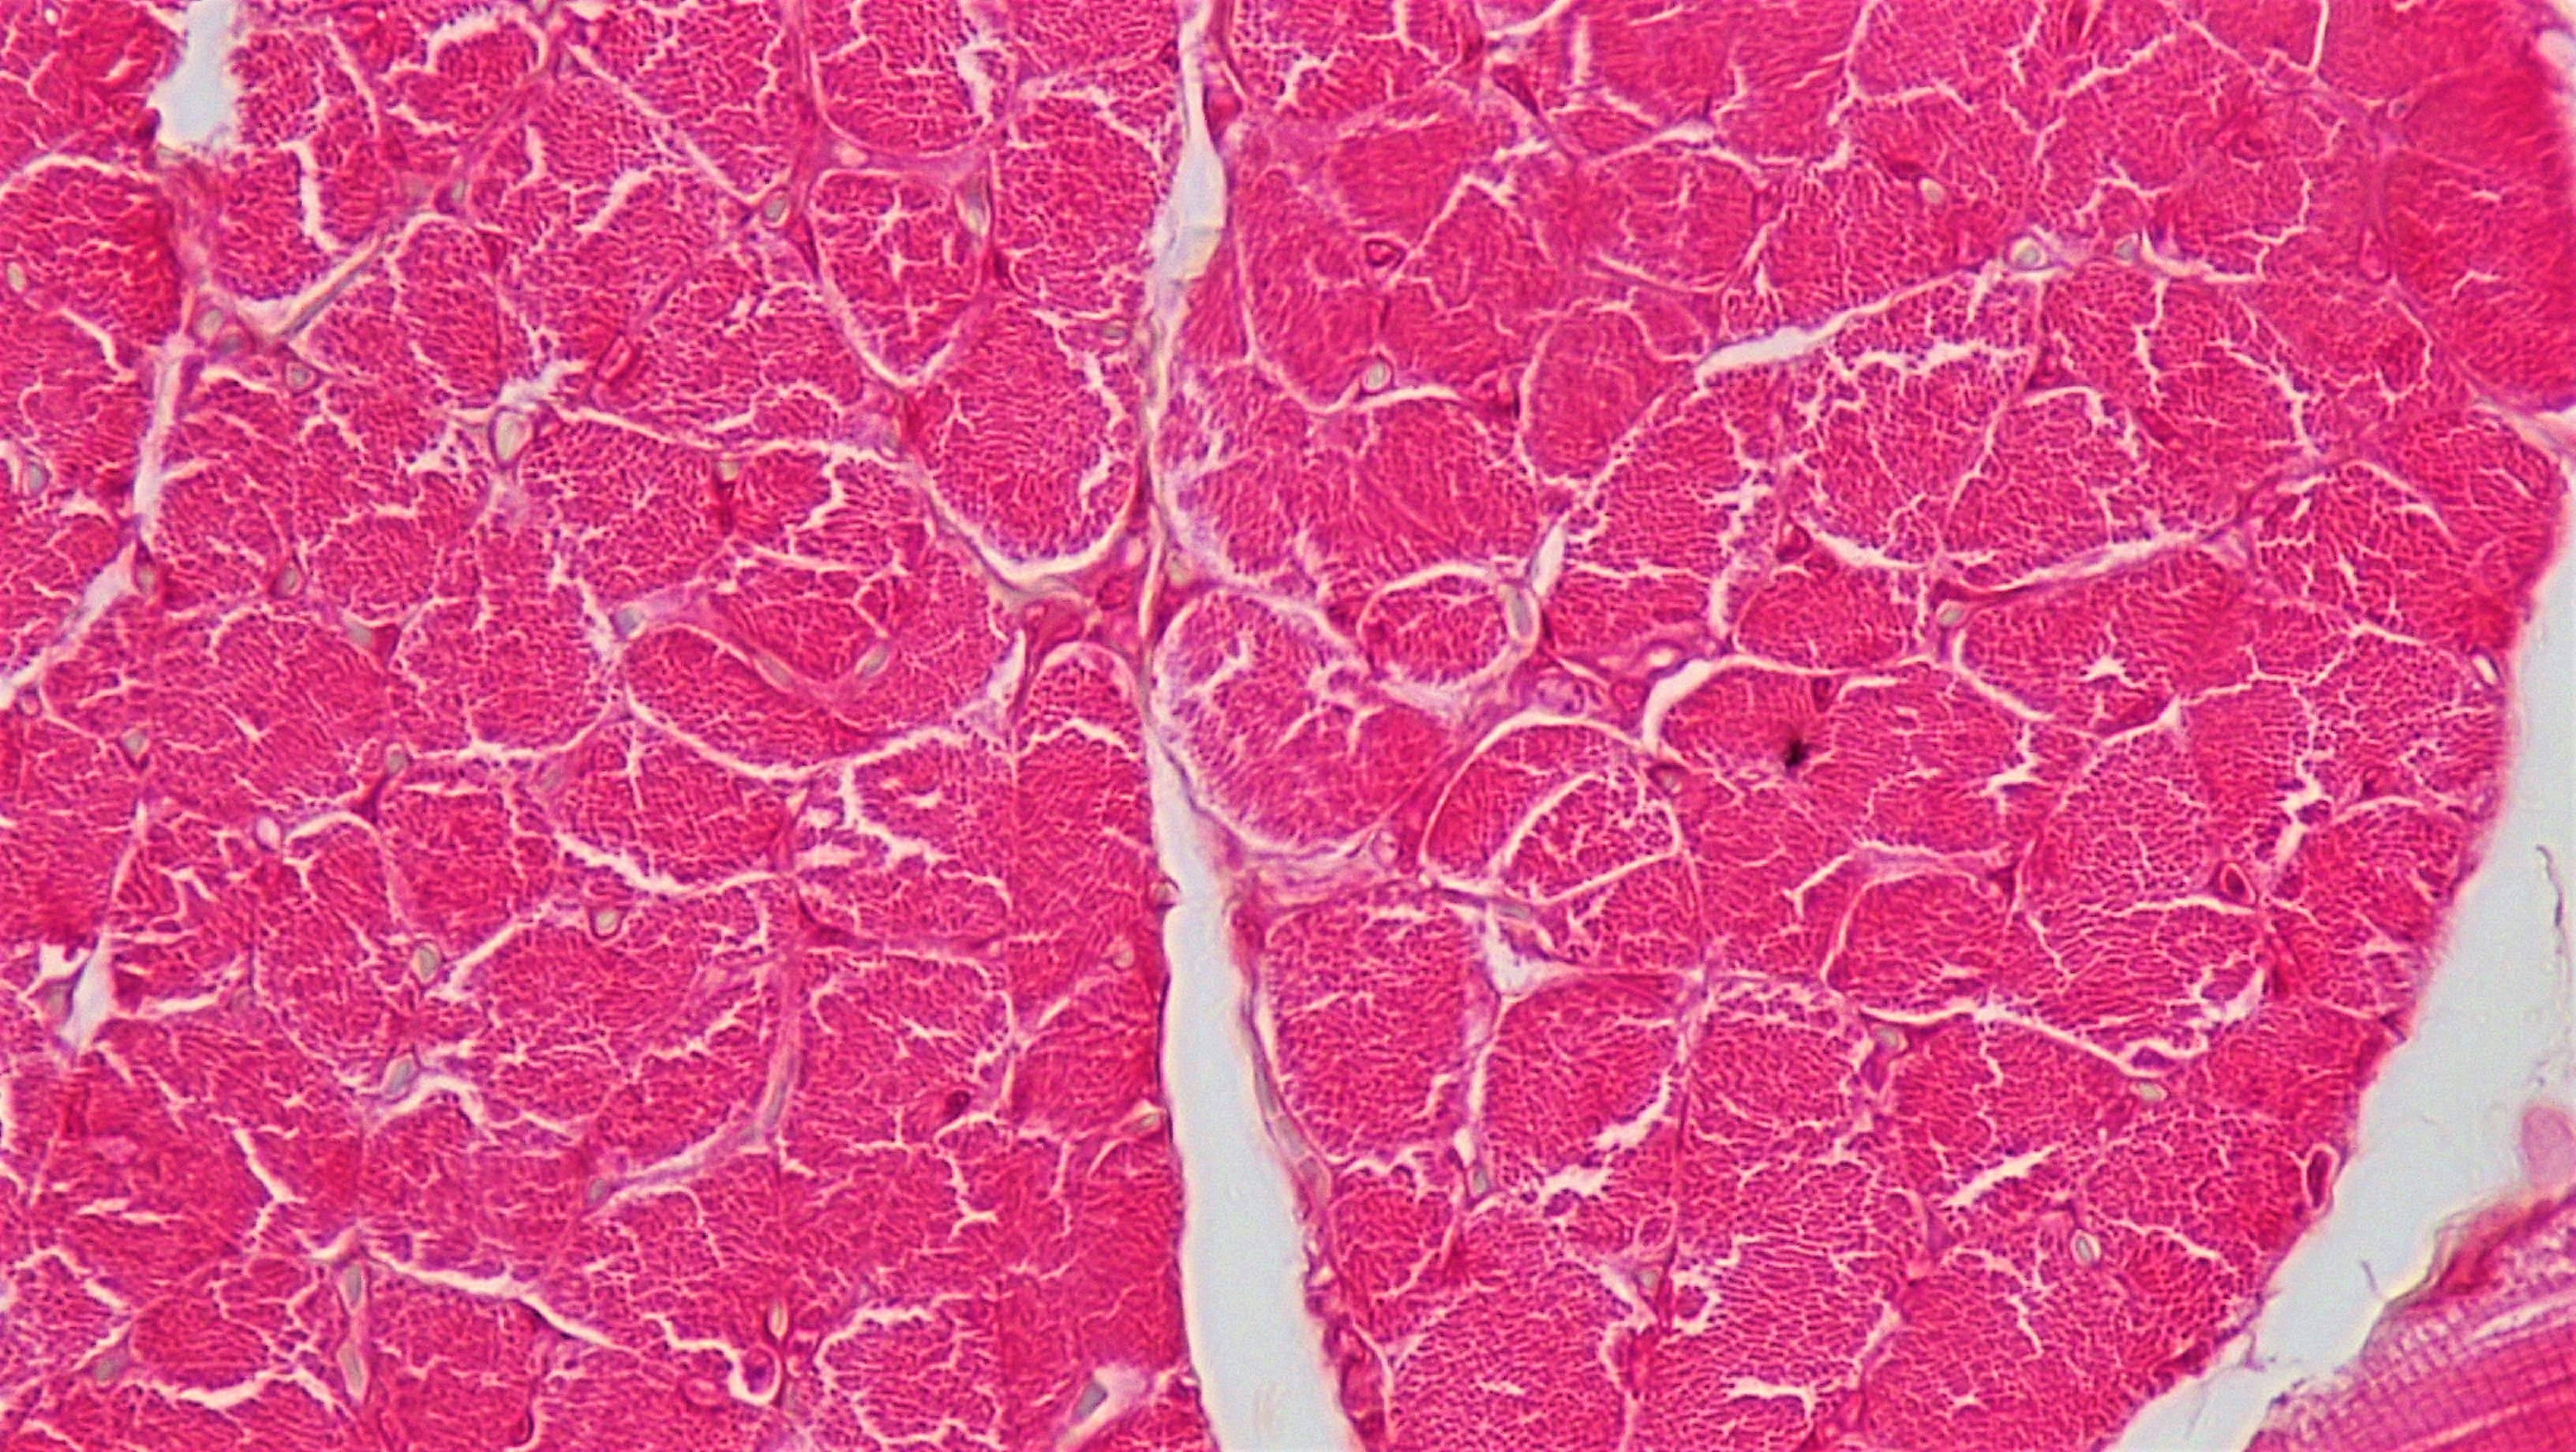 Filemuscle Tissue Cross Section Whole Skeletal Muscle 28089119578